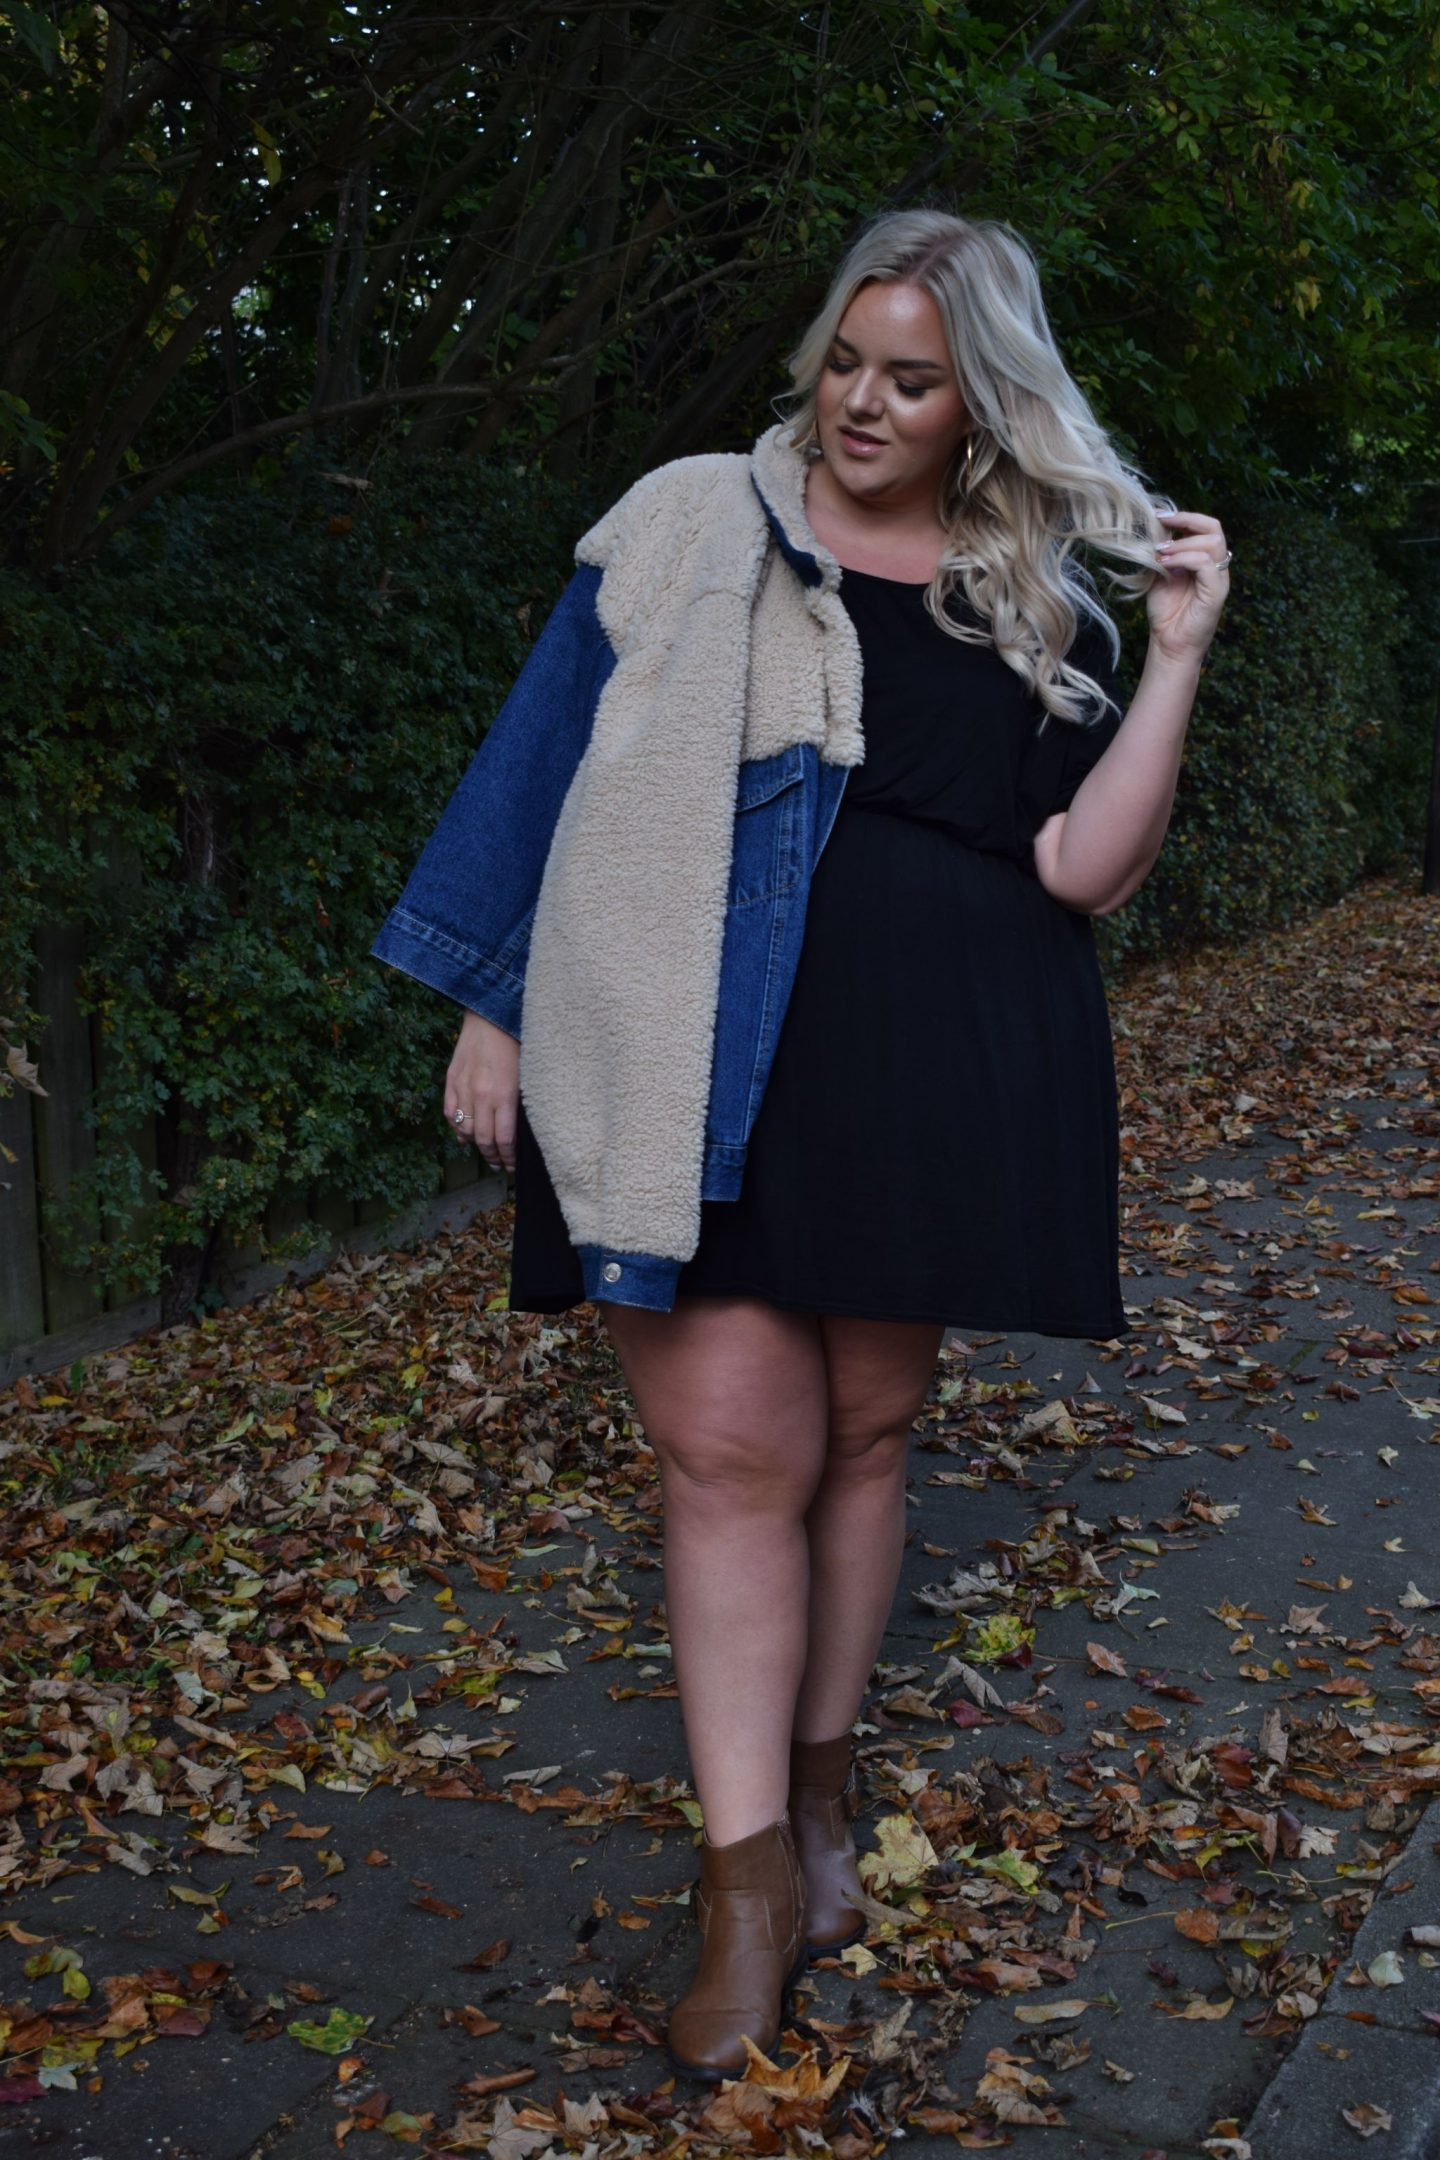 In the style curve on blogger whatlauraloves